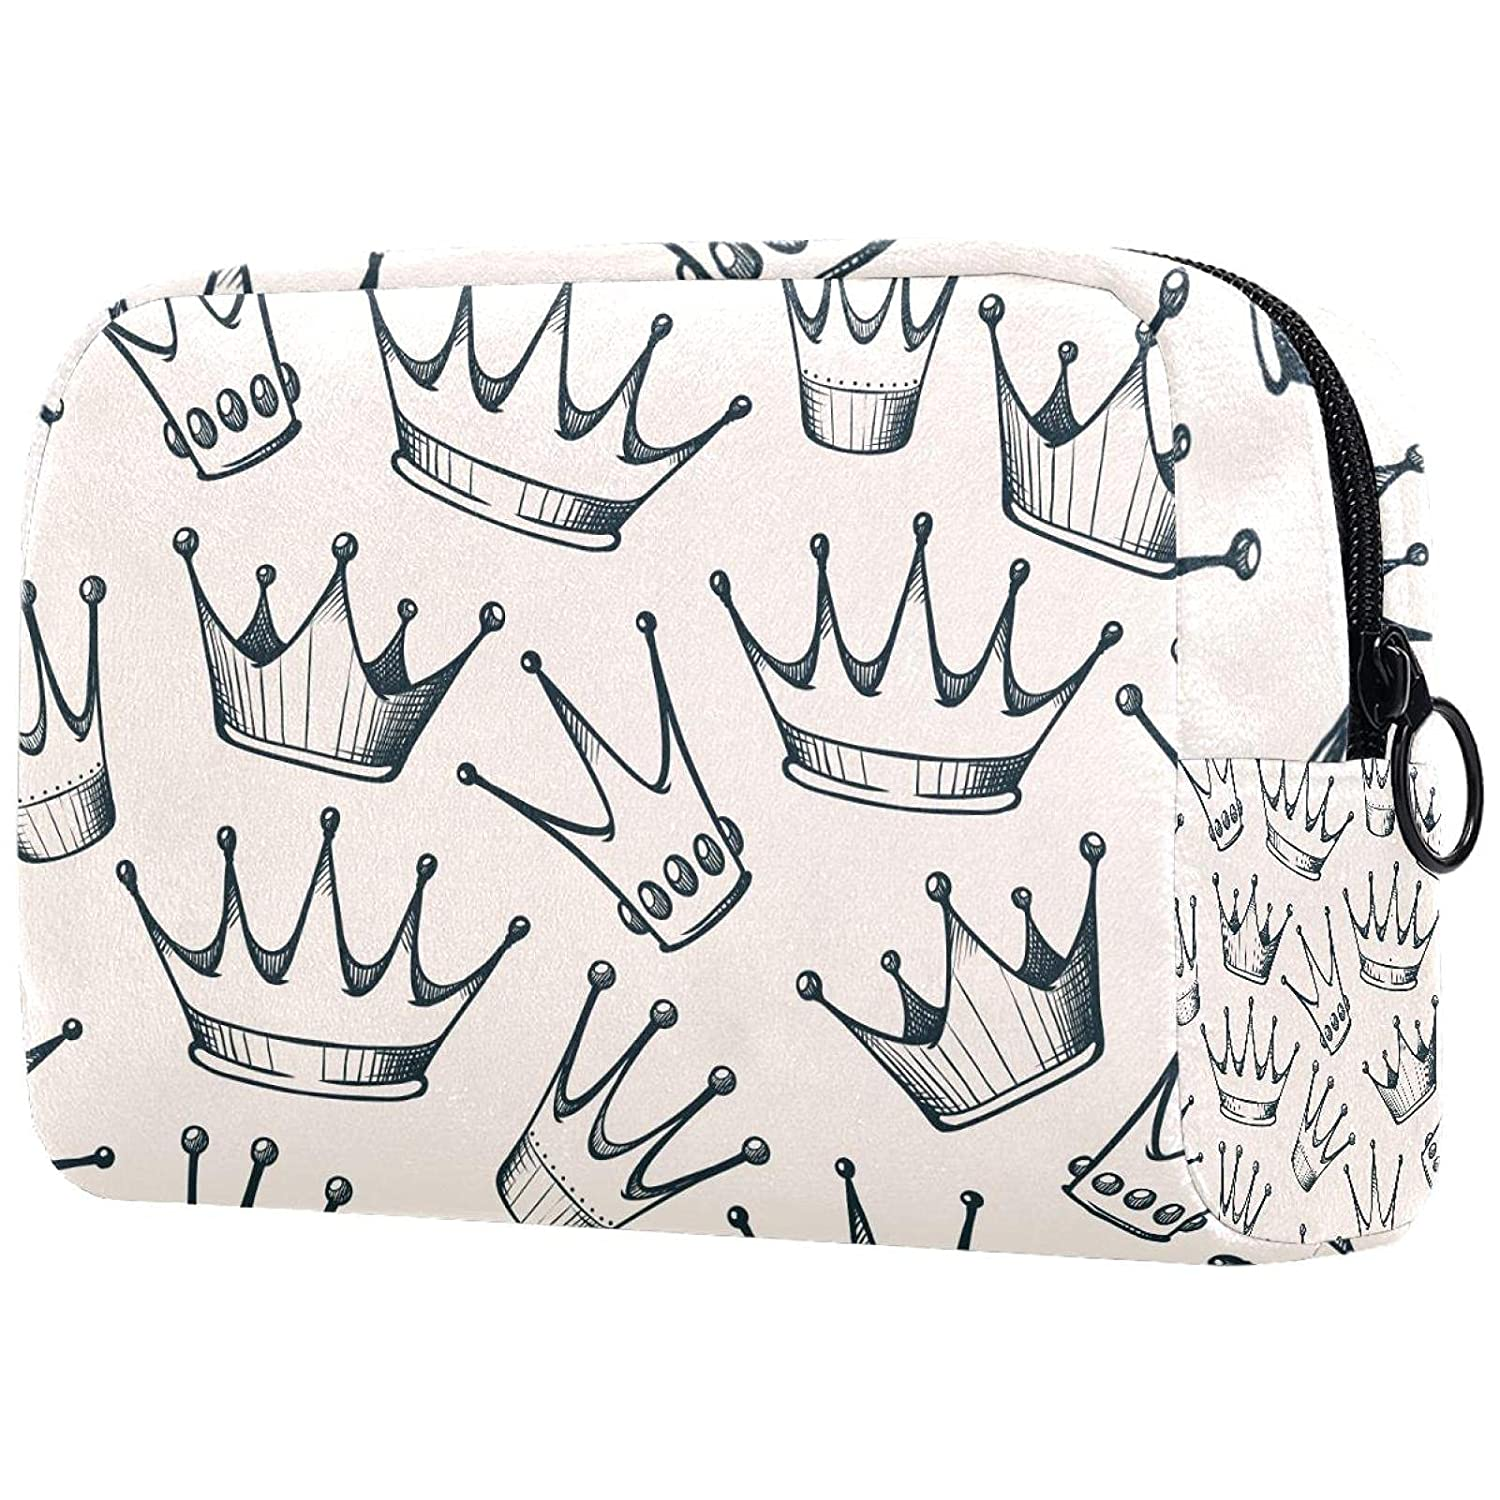 Toiletry Bag Cosmetic Travel Makeup Raleigh Mall Wash wit Organizer Washington Mall Pouch